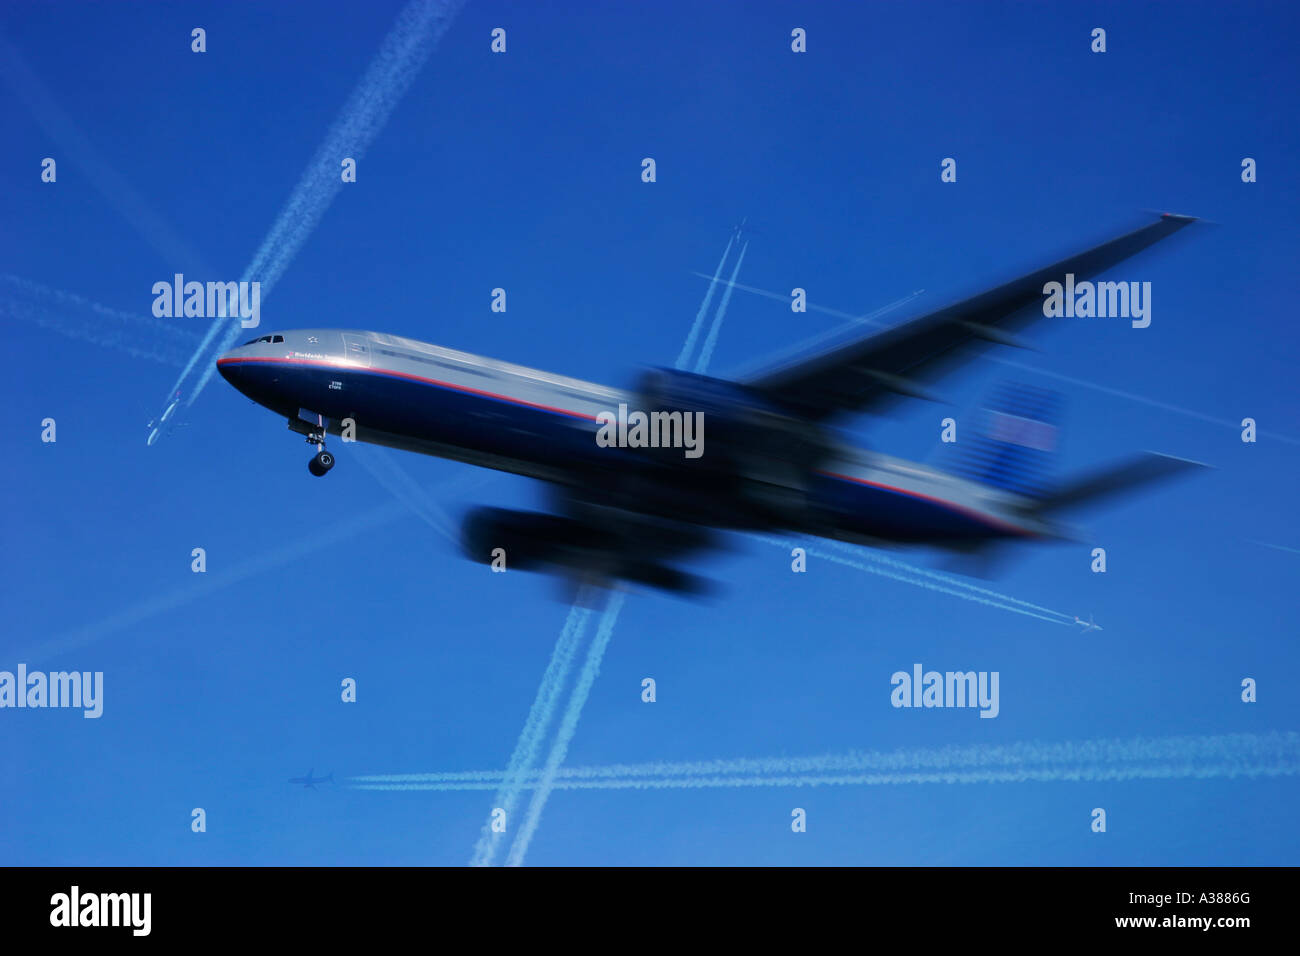 Commercial airplane in flight with many other airlineres above passing at high altitude - Stock Image